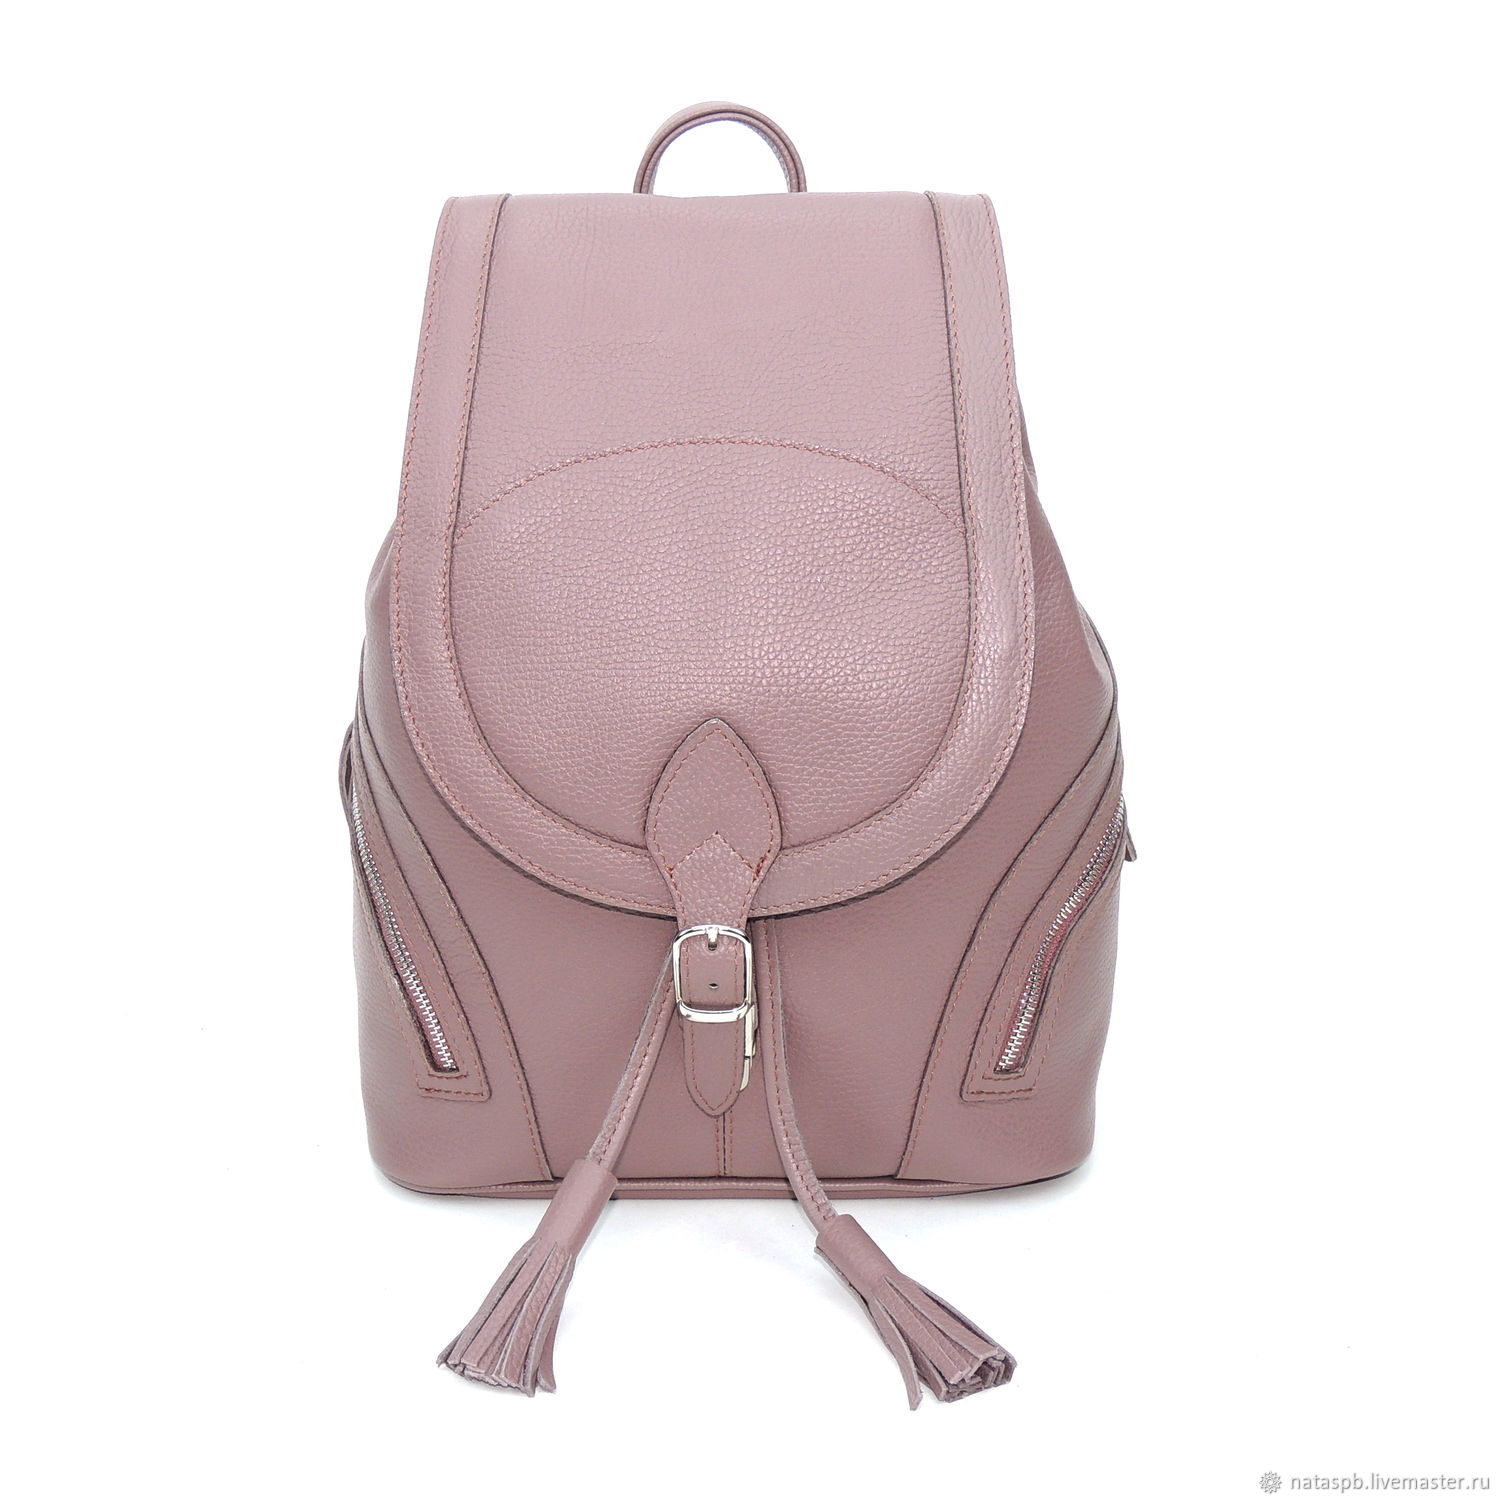 buy backpack women's backpack, buy backpack shop backpack leather backpack leather backpack, buy leather backpack, buy leather backpack women's handbag backpack